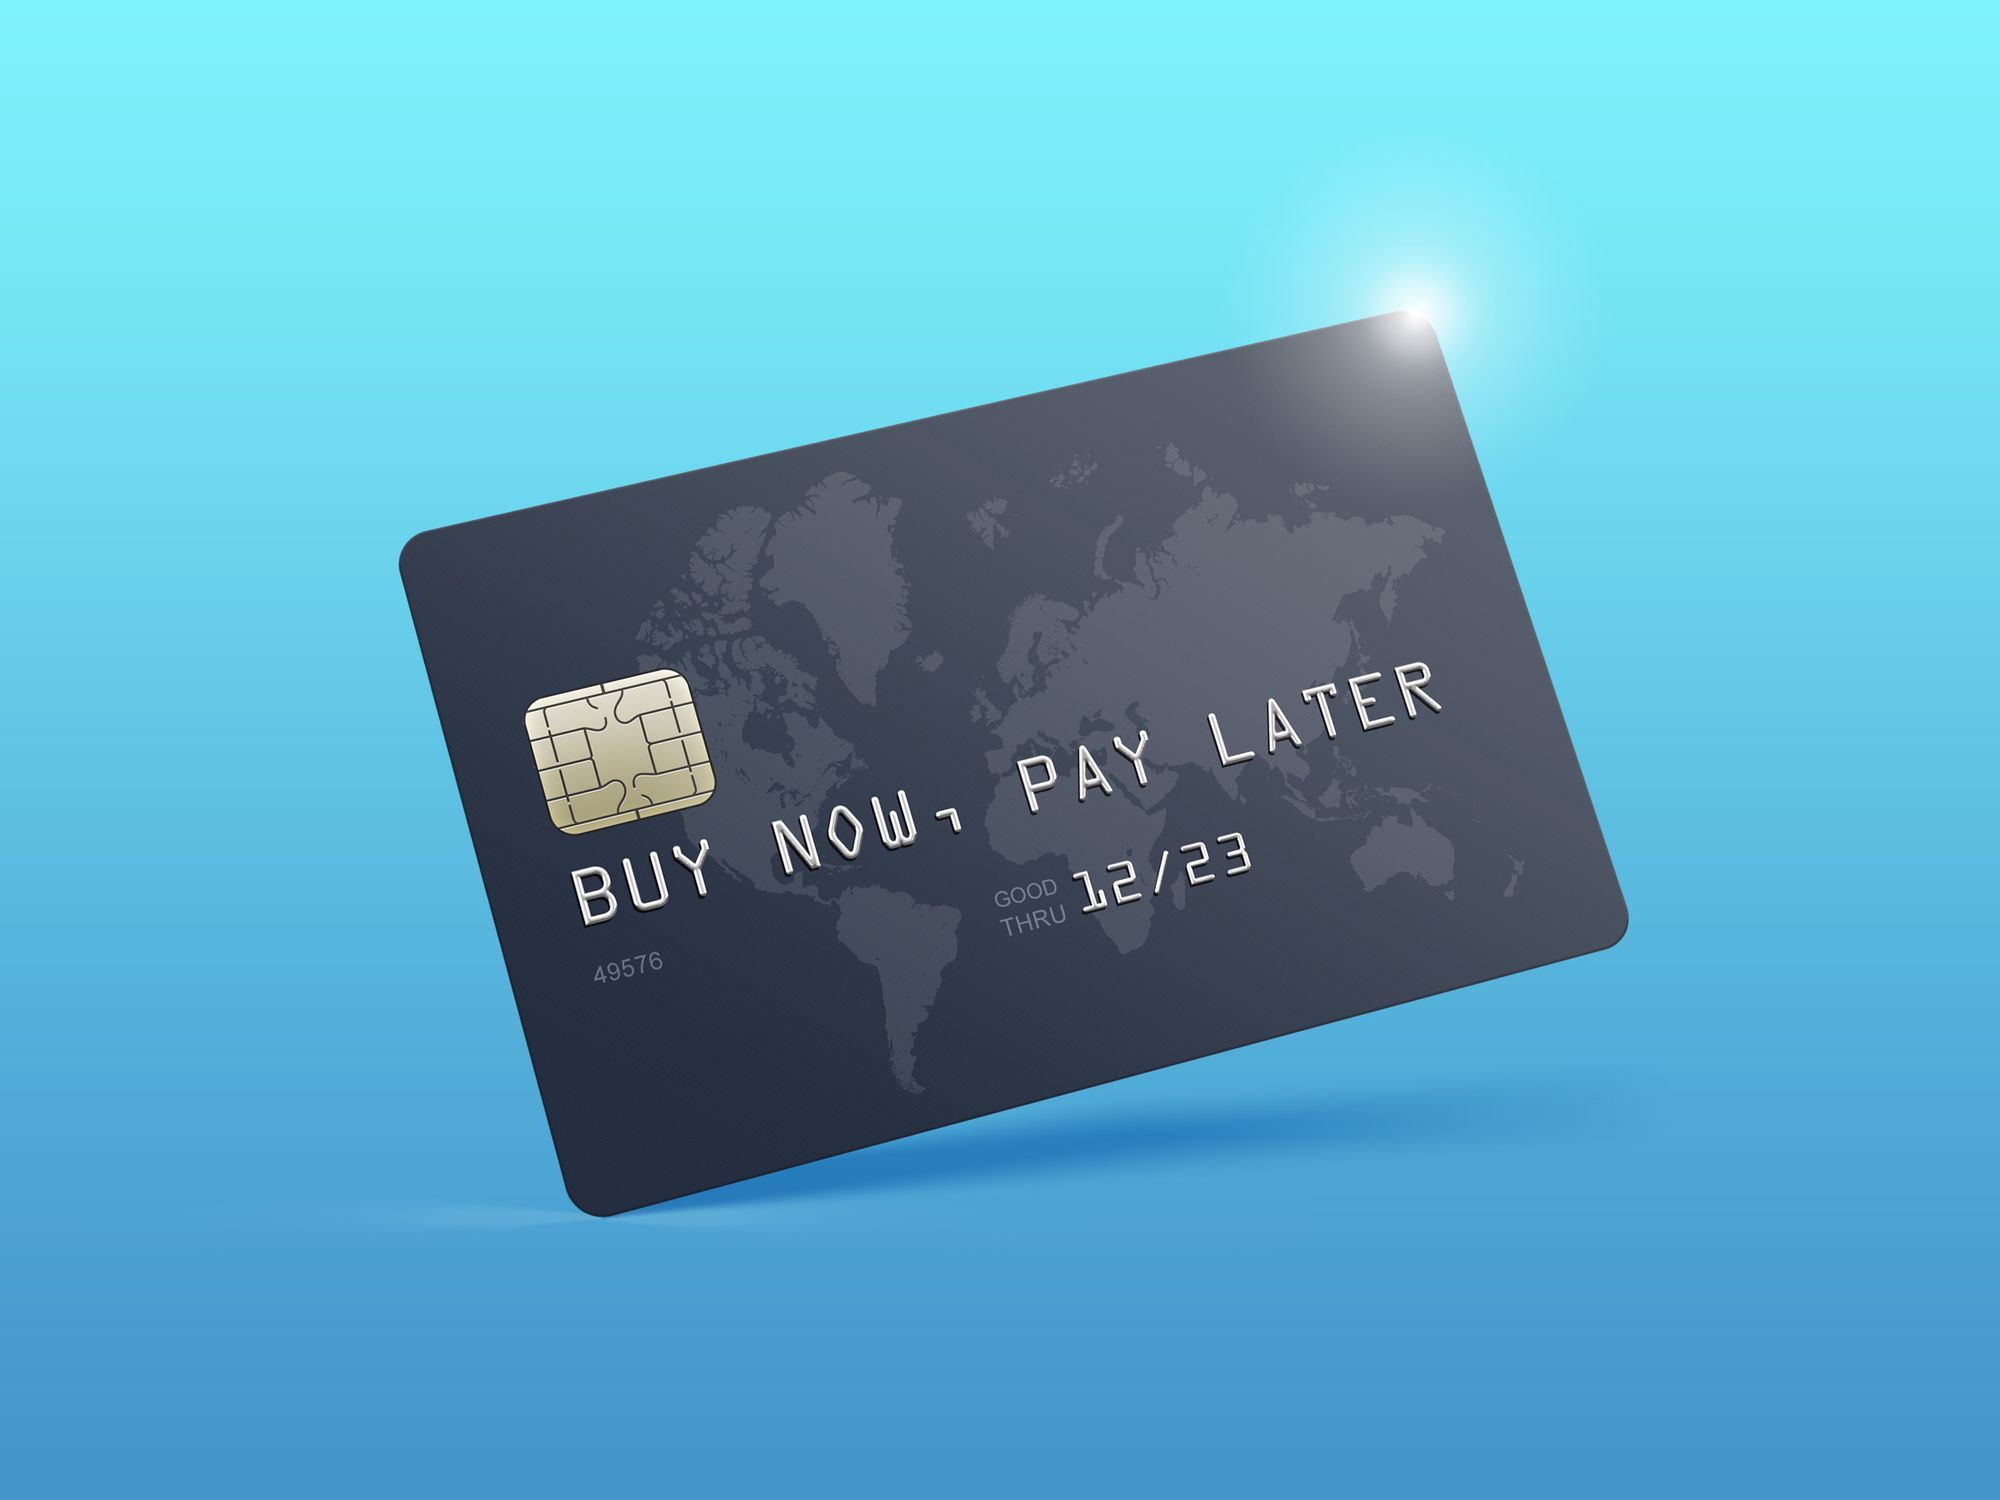 Buy Now Pay Later: Why Millennials and Gen Zs are crazy for split payment options